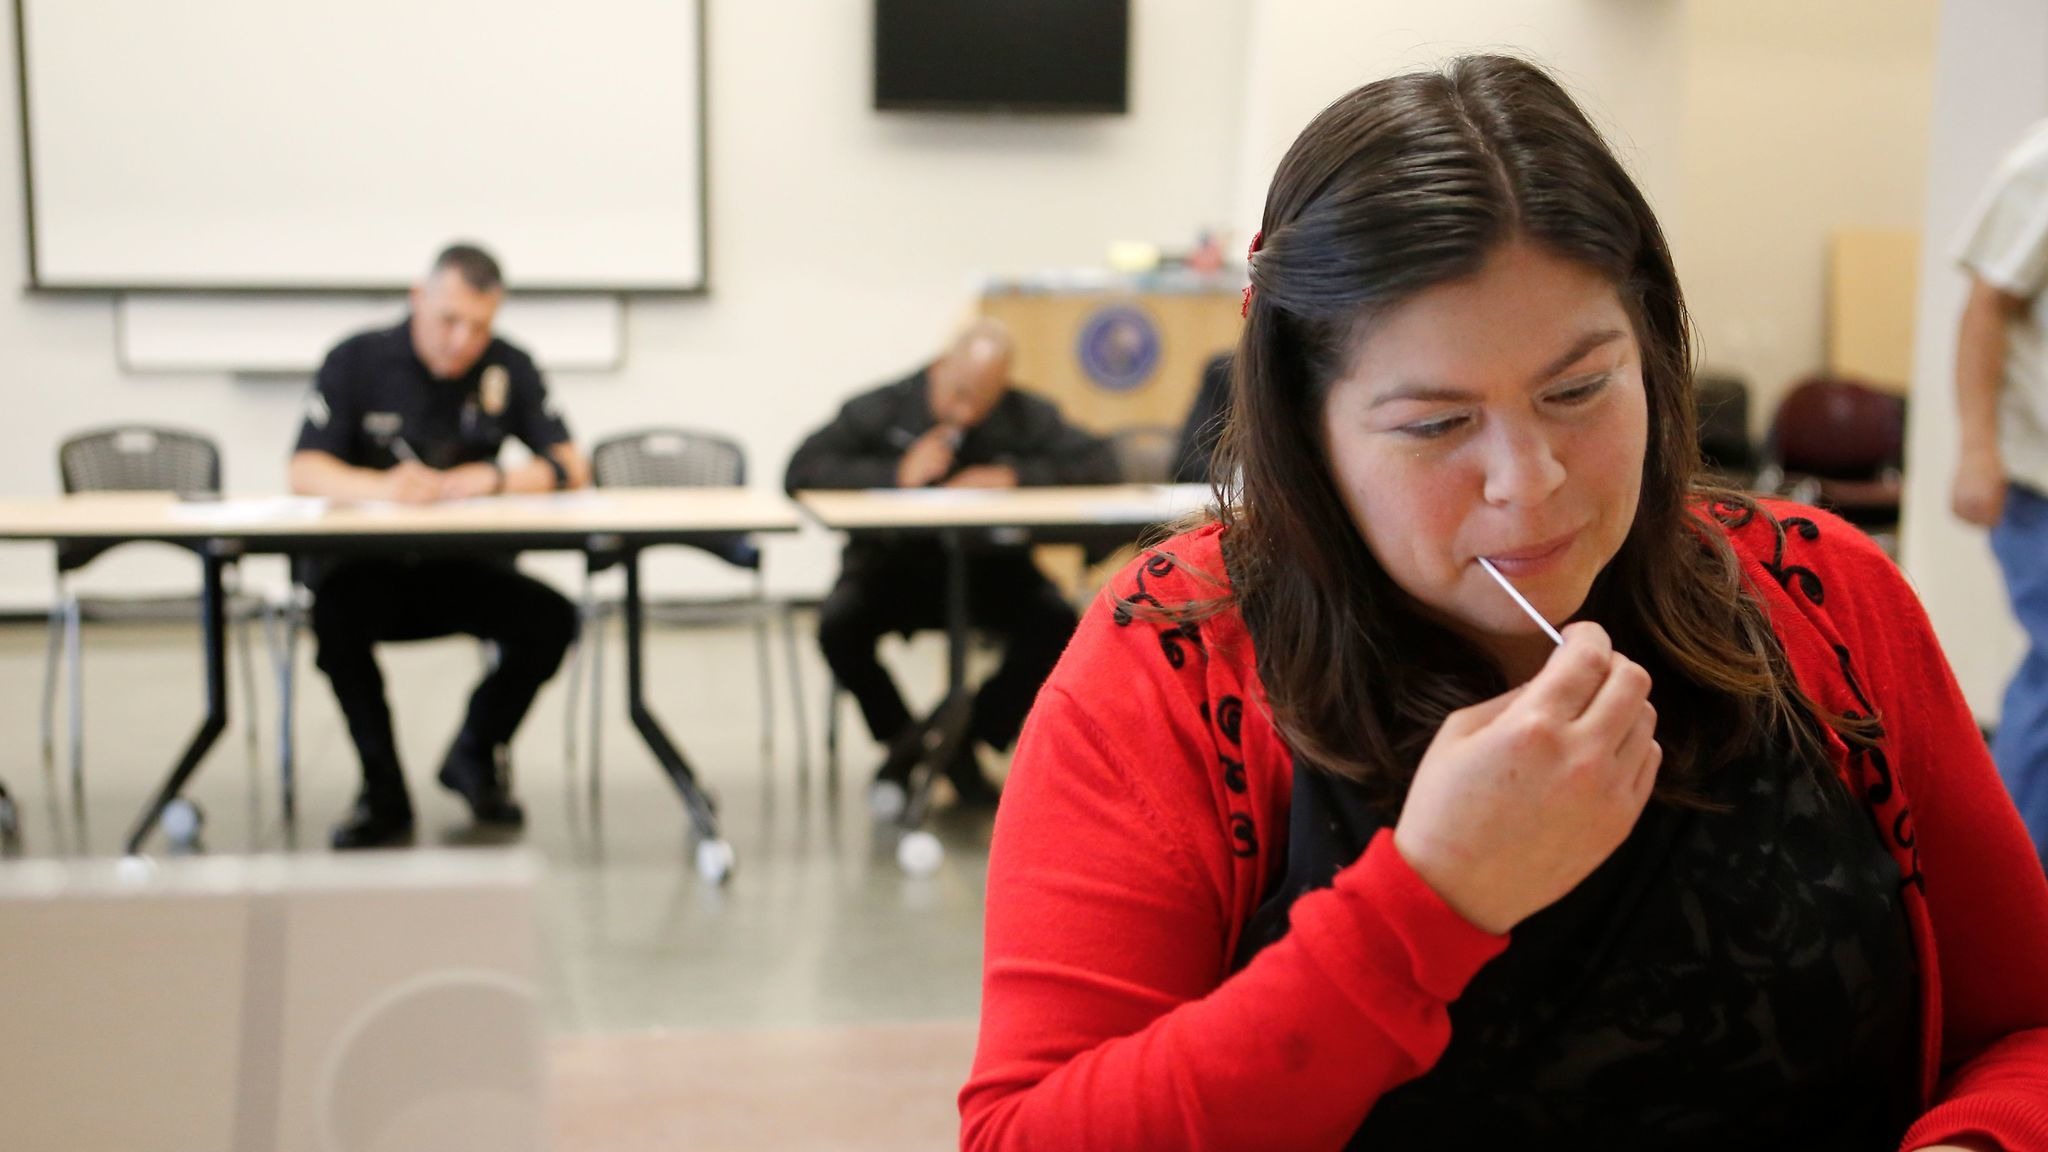 Jacqueline Chilin swabs cells from her cheek that will be tested to determine if she is a match for LAPD Officer Matthew Medina, who needs a bone marrow transplant.